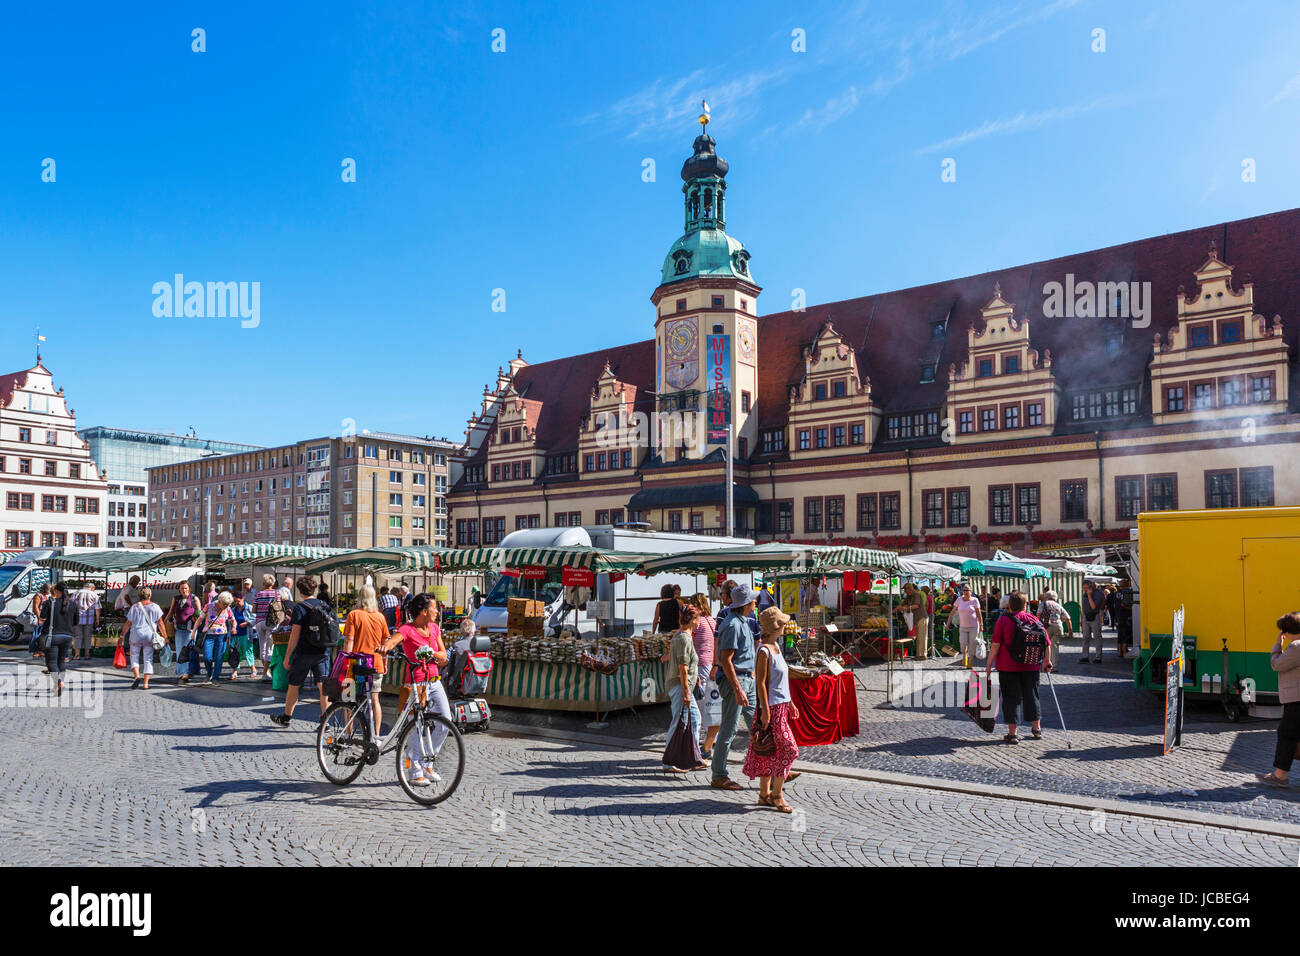 Leipzig, Germany. Market in the Markt (Market Square) in front of the Altes Rathaus (Old Town Hall), Leipzig, Saxony, - Stock Image